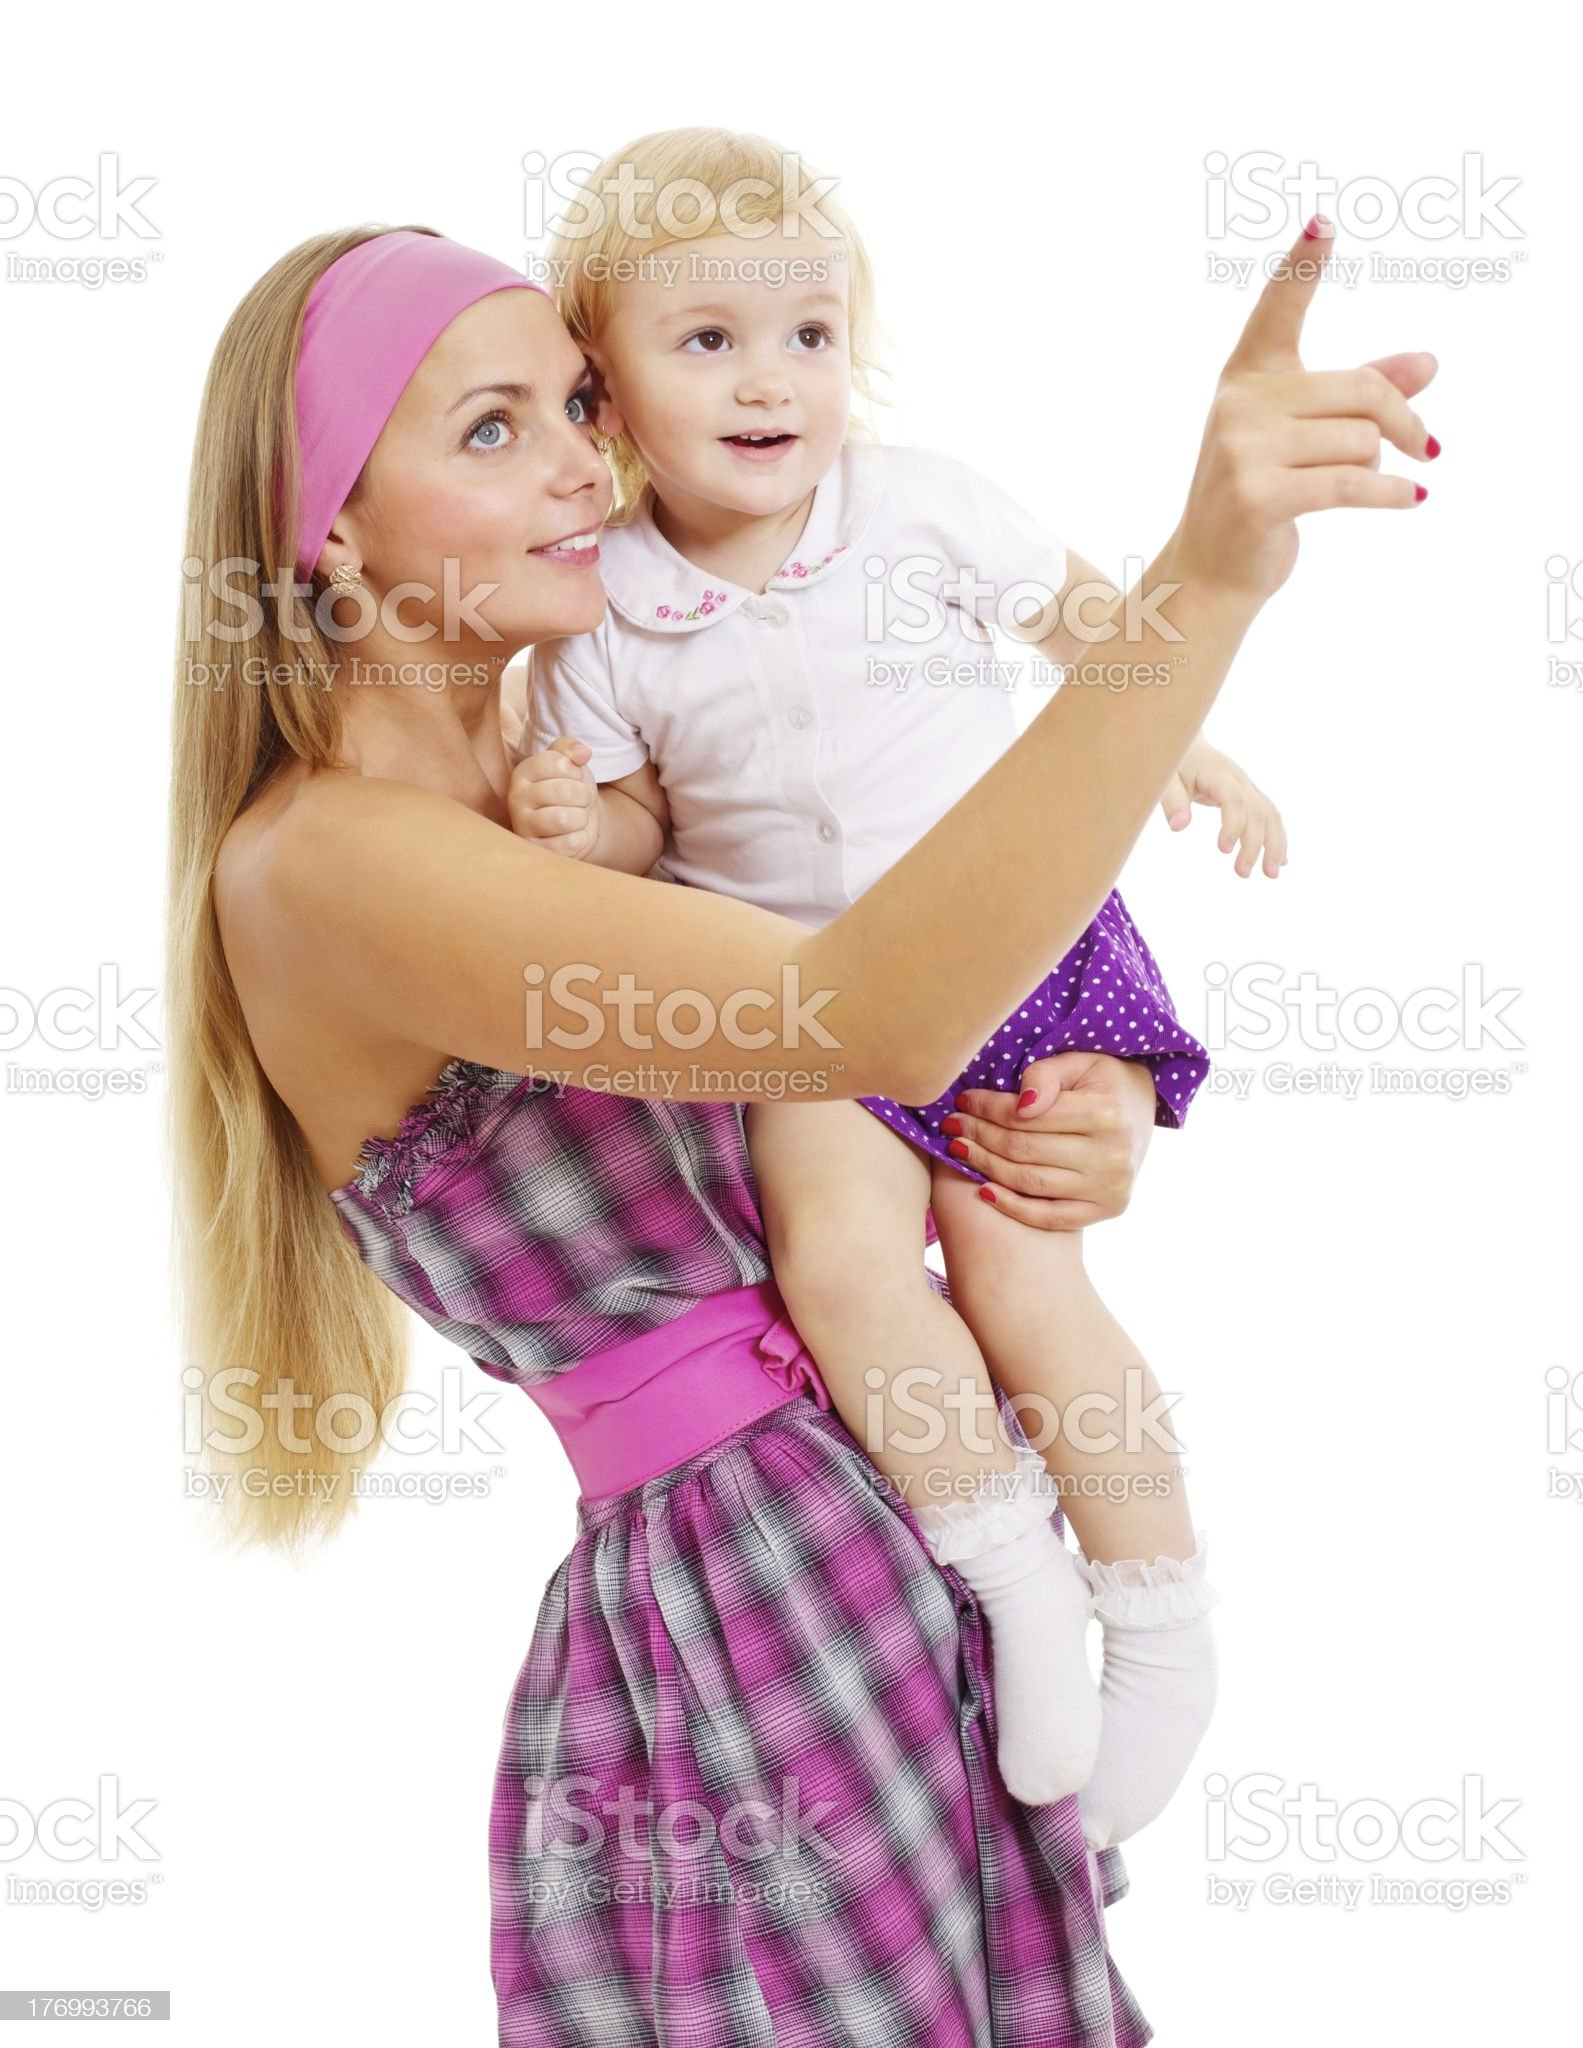 Surprised mother and baby looking ahead royalty-free stock photo